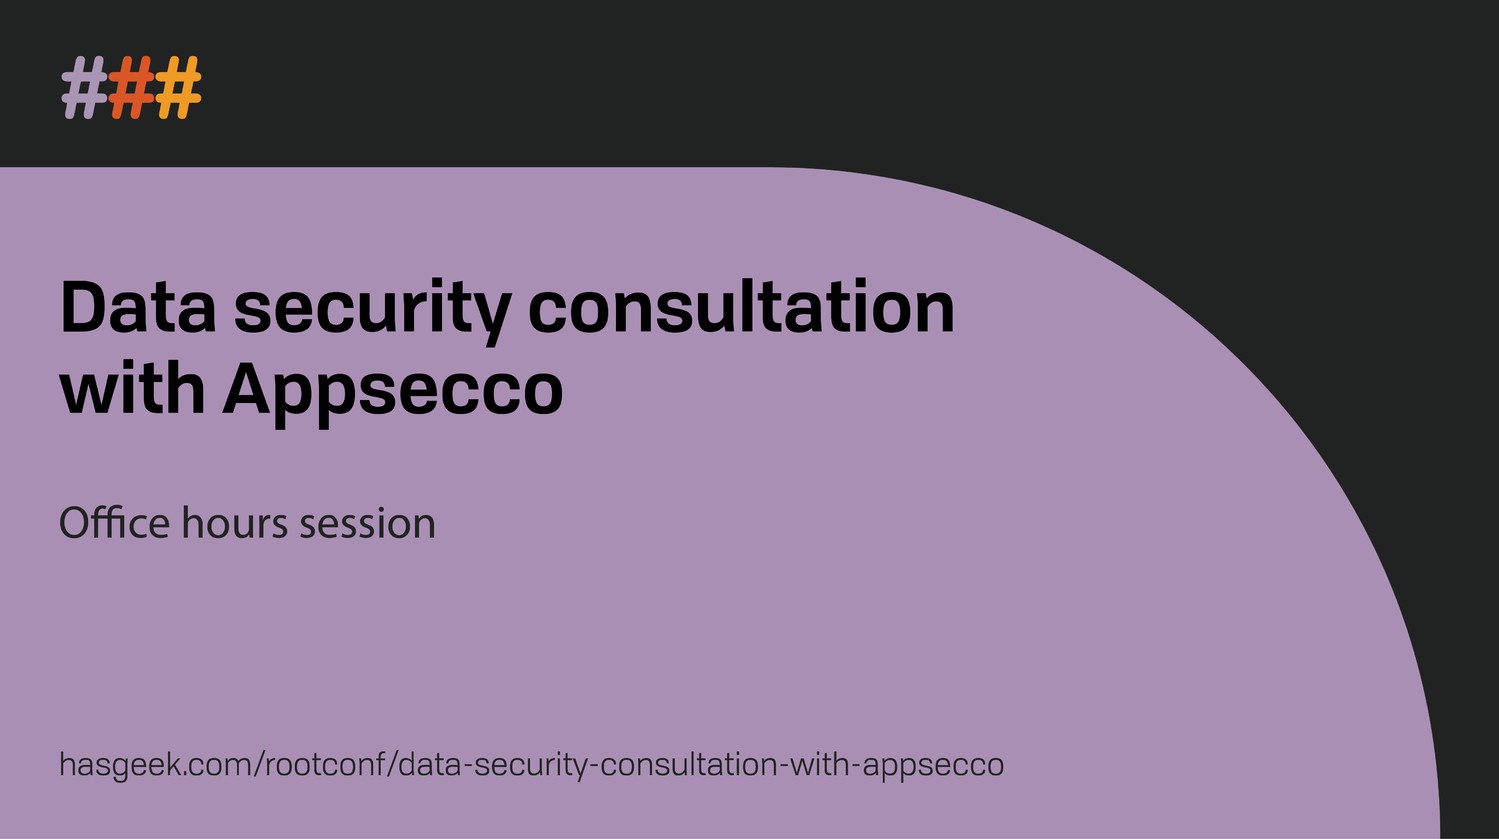 Data security consultation with Appsecco